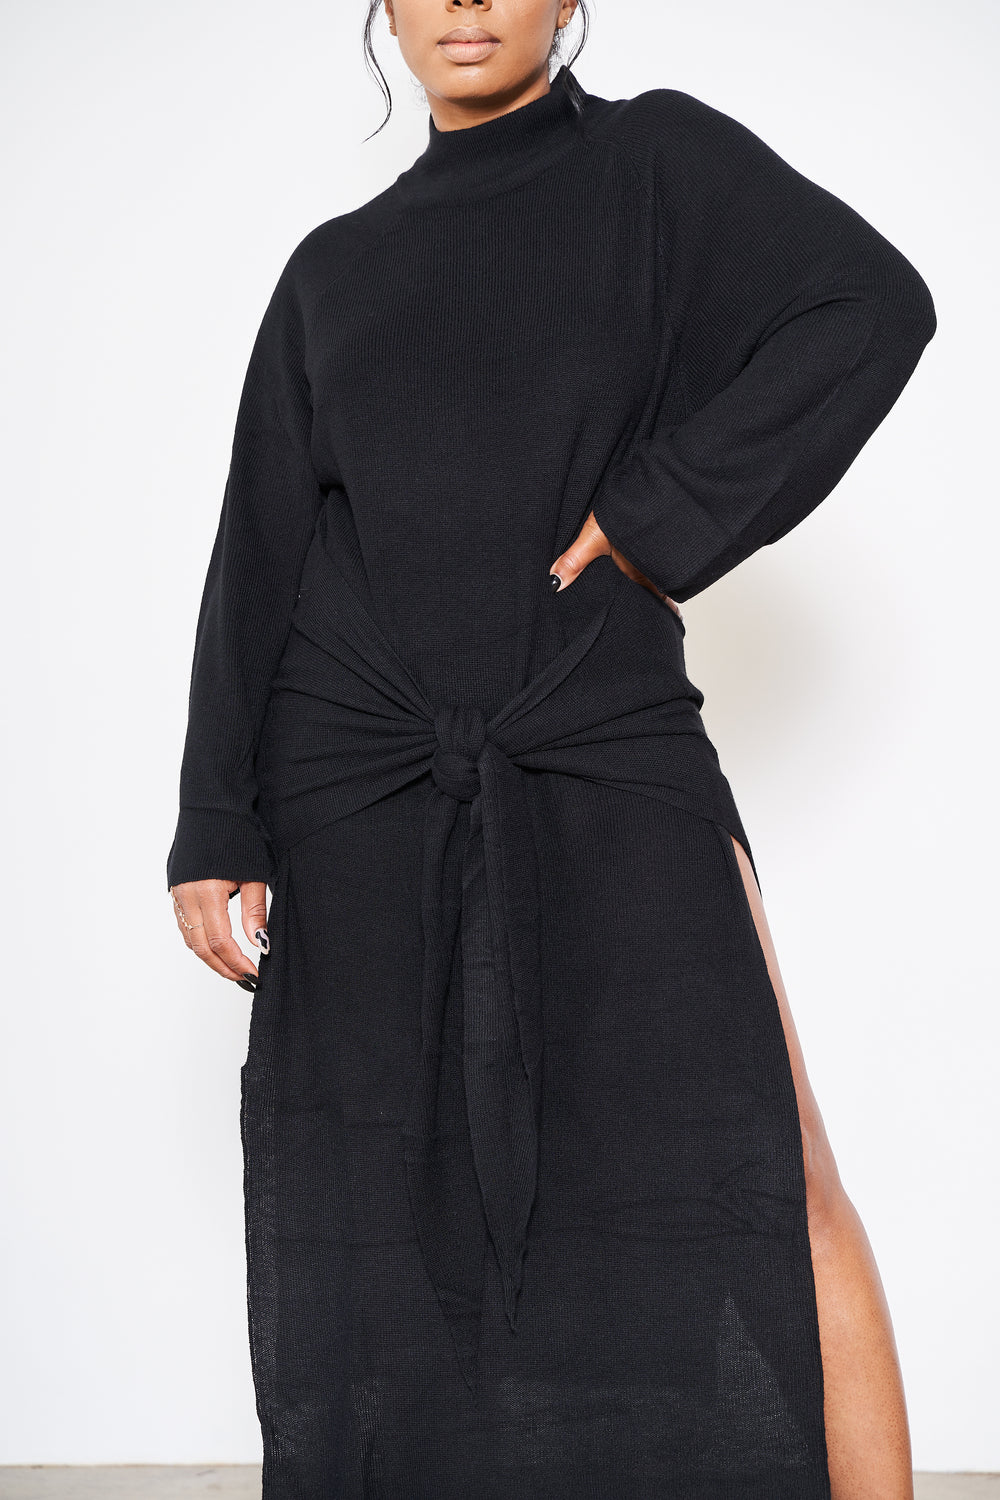 A Different Cloth | Sweater Dress (Black)